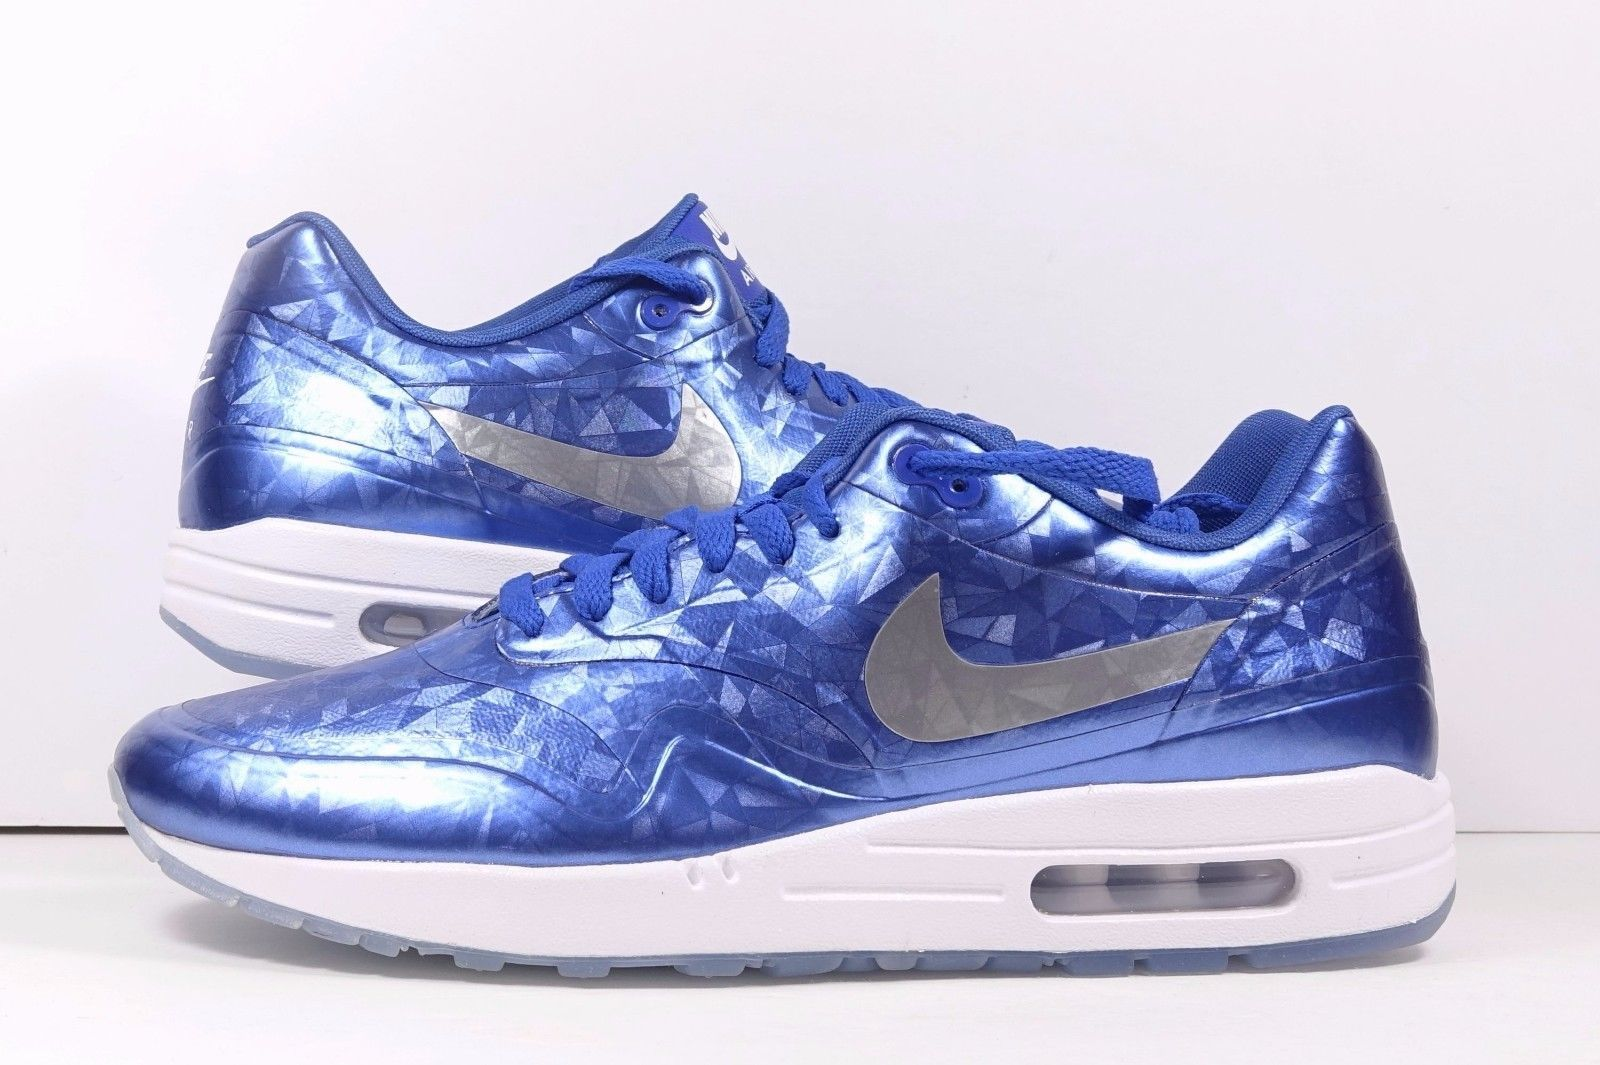 buy online 25e37 7ee30 Nike Air Max 1 ID Blue White Ice Sole Sz and 50 similar items. S l1600